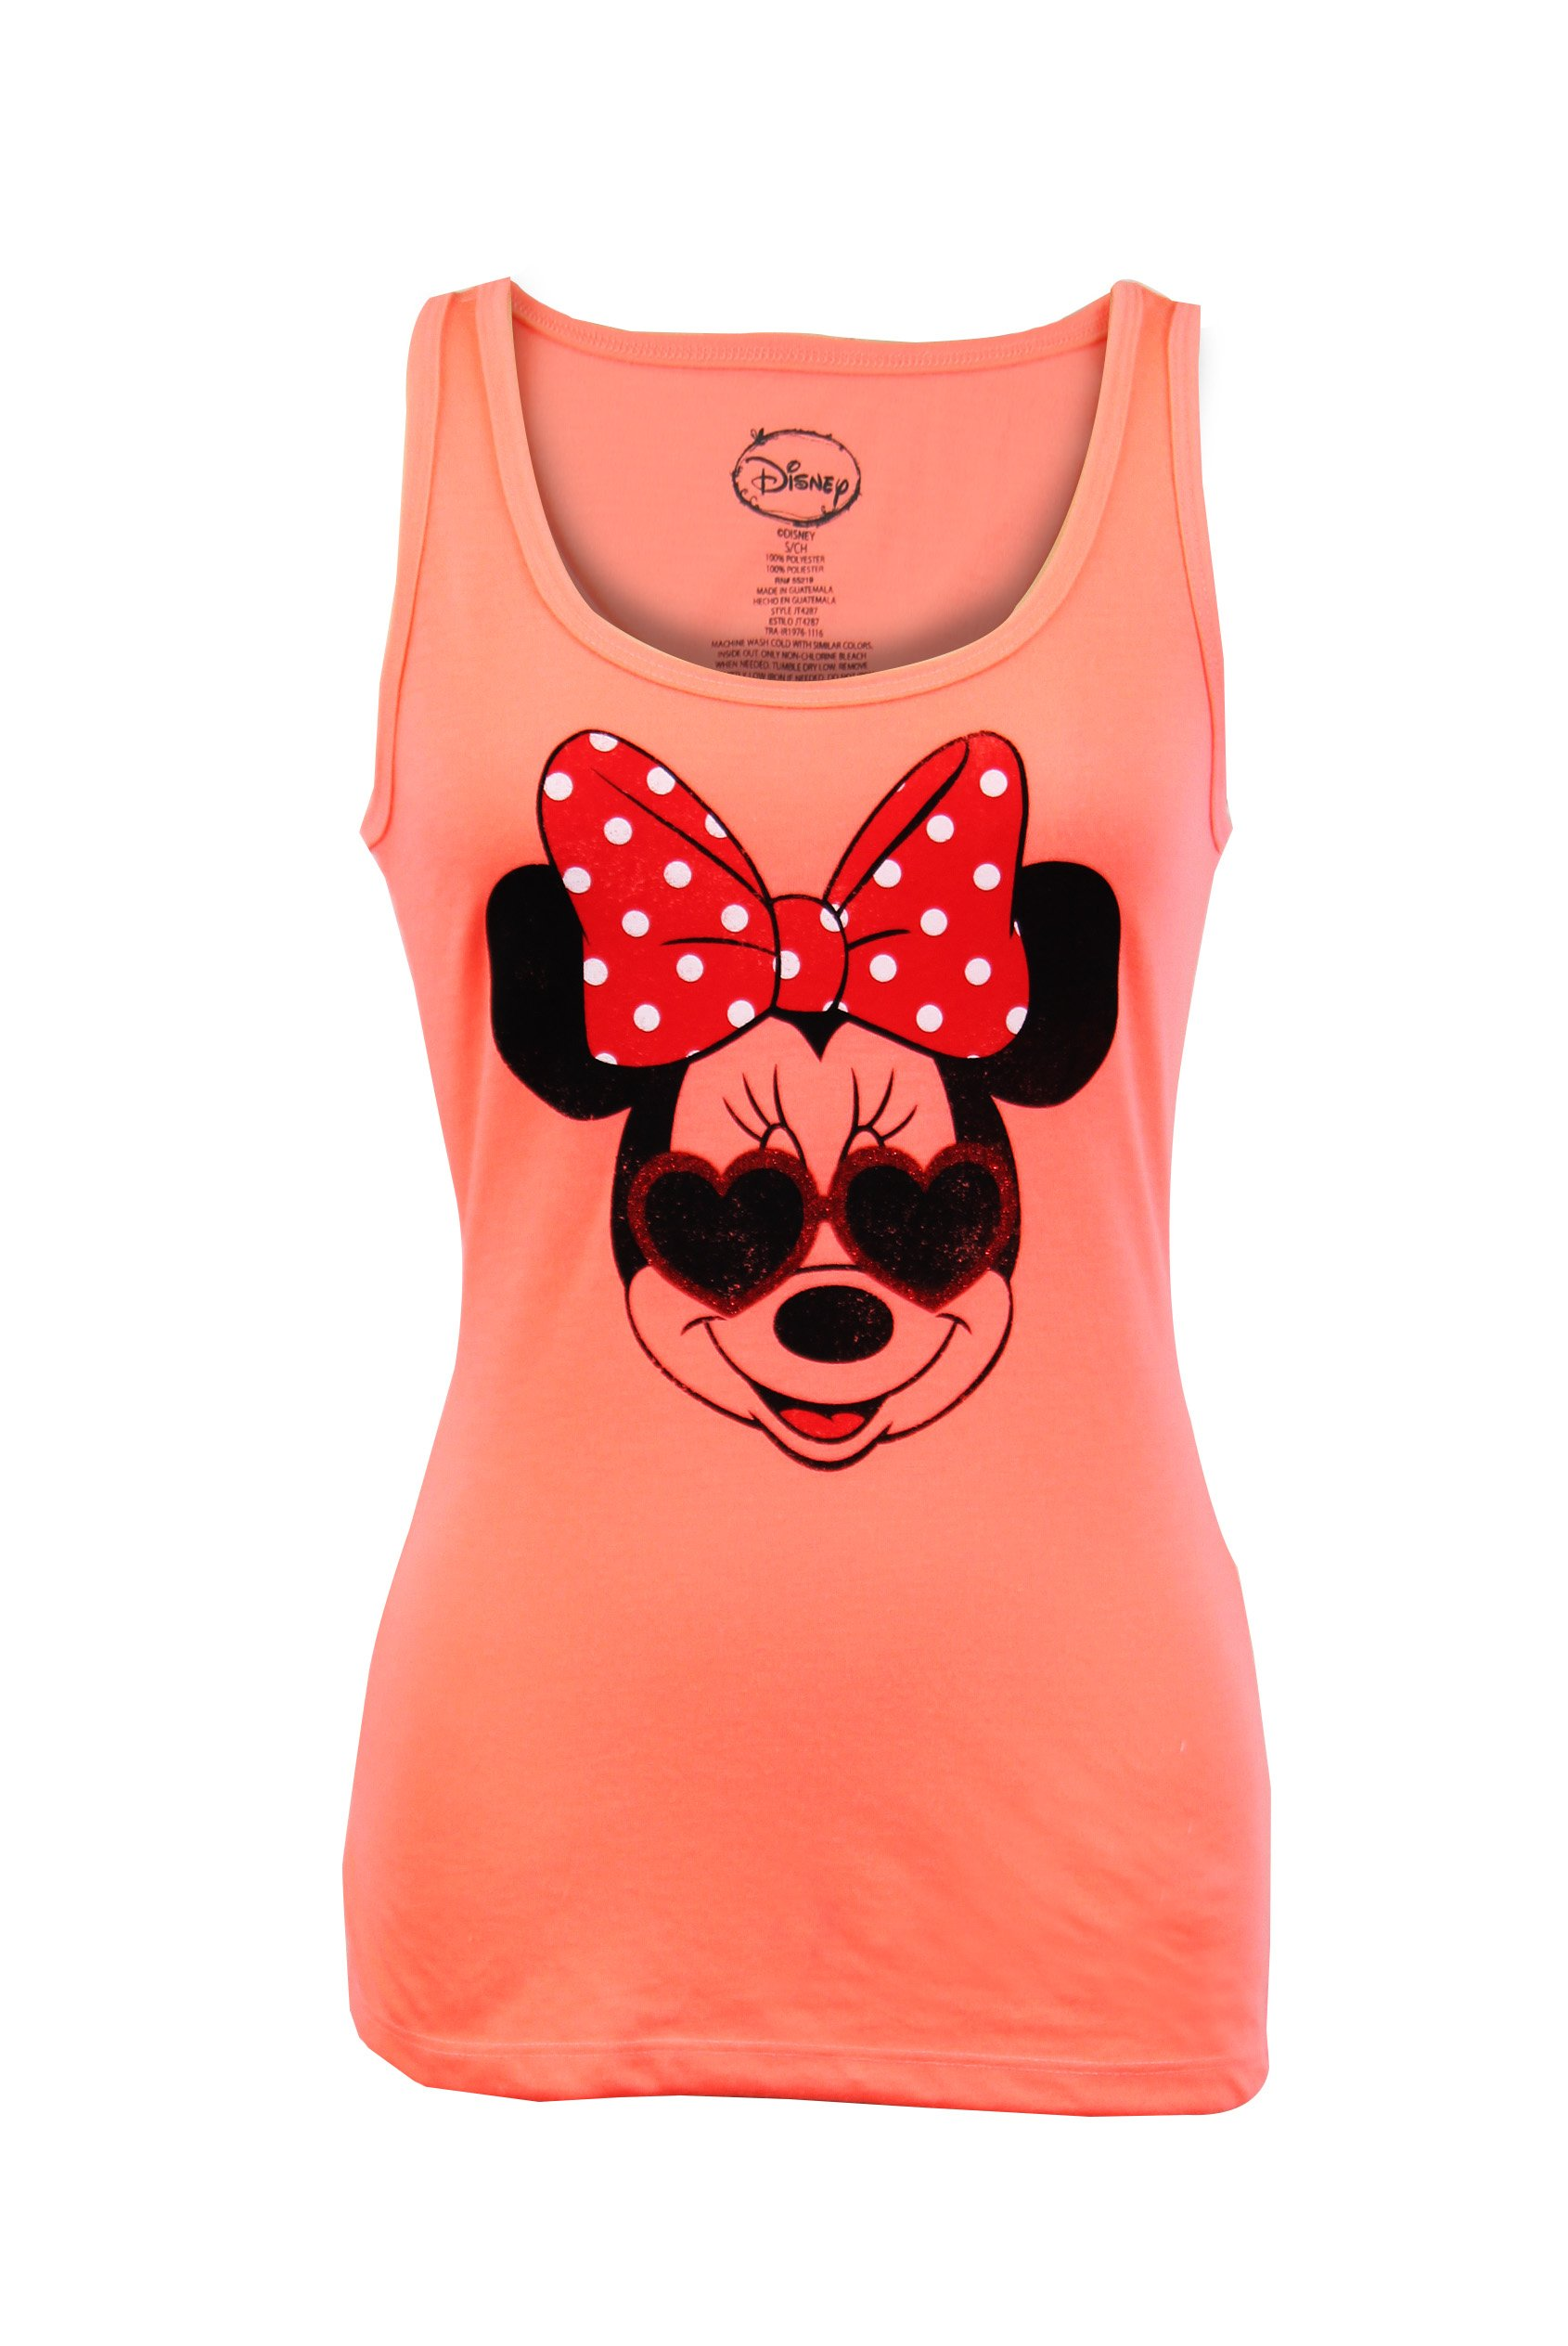 Minnie Mouse Face Basic Sleeveless Tank Top (X-Large) by City Disney